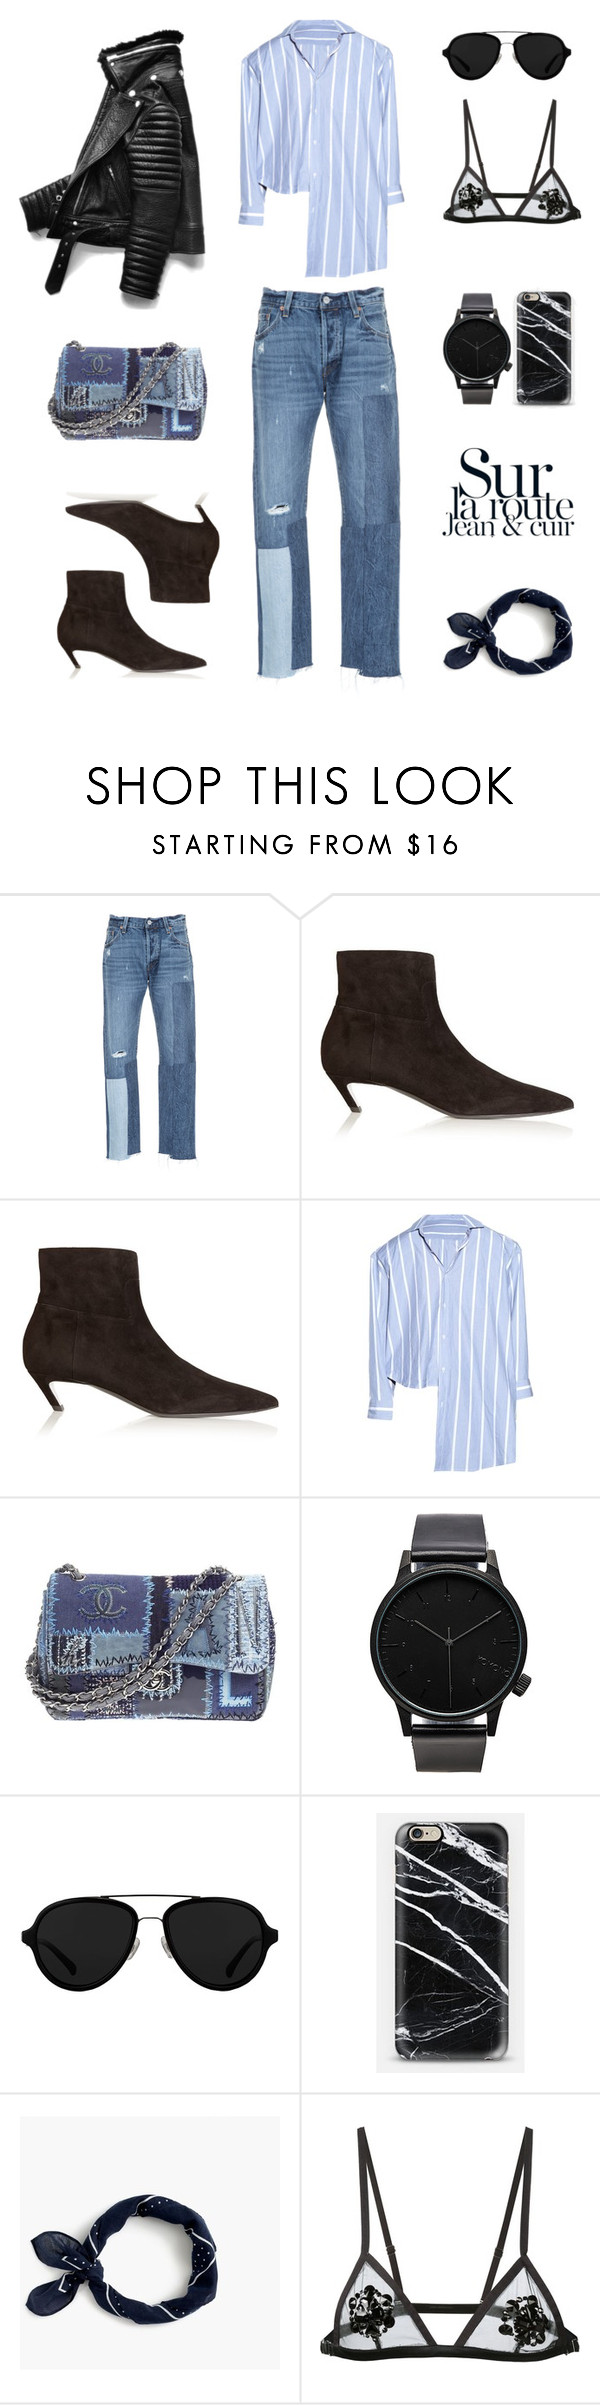 """Unbenannt #702"" by fashionlandscape ❤ liked on Polyvore featuring Levi's, Balenciaga, Chanel, Komono, 3.1 Phillip Lim, Casetify, J.Crew and Fleur du Mal"